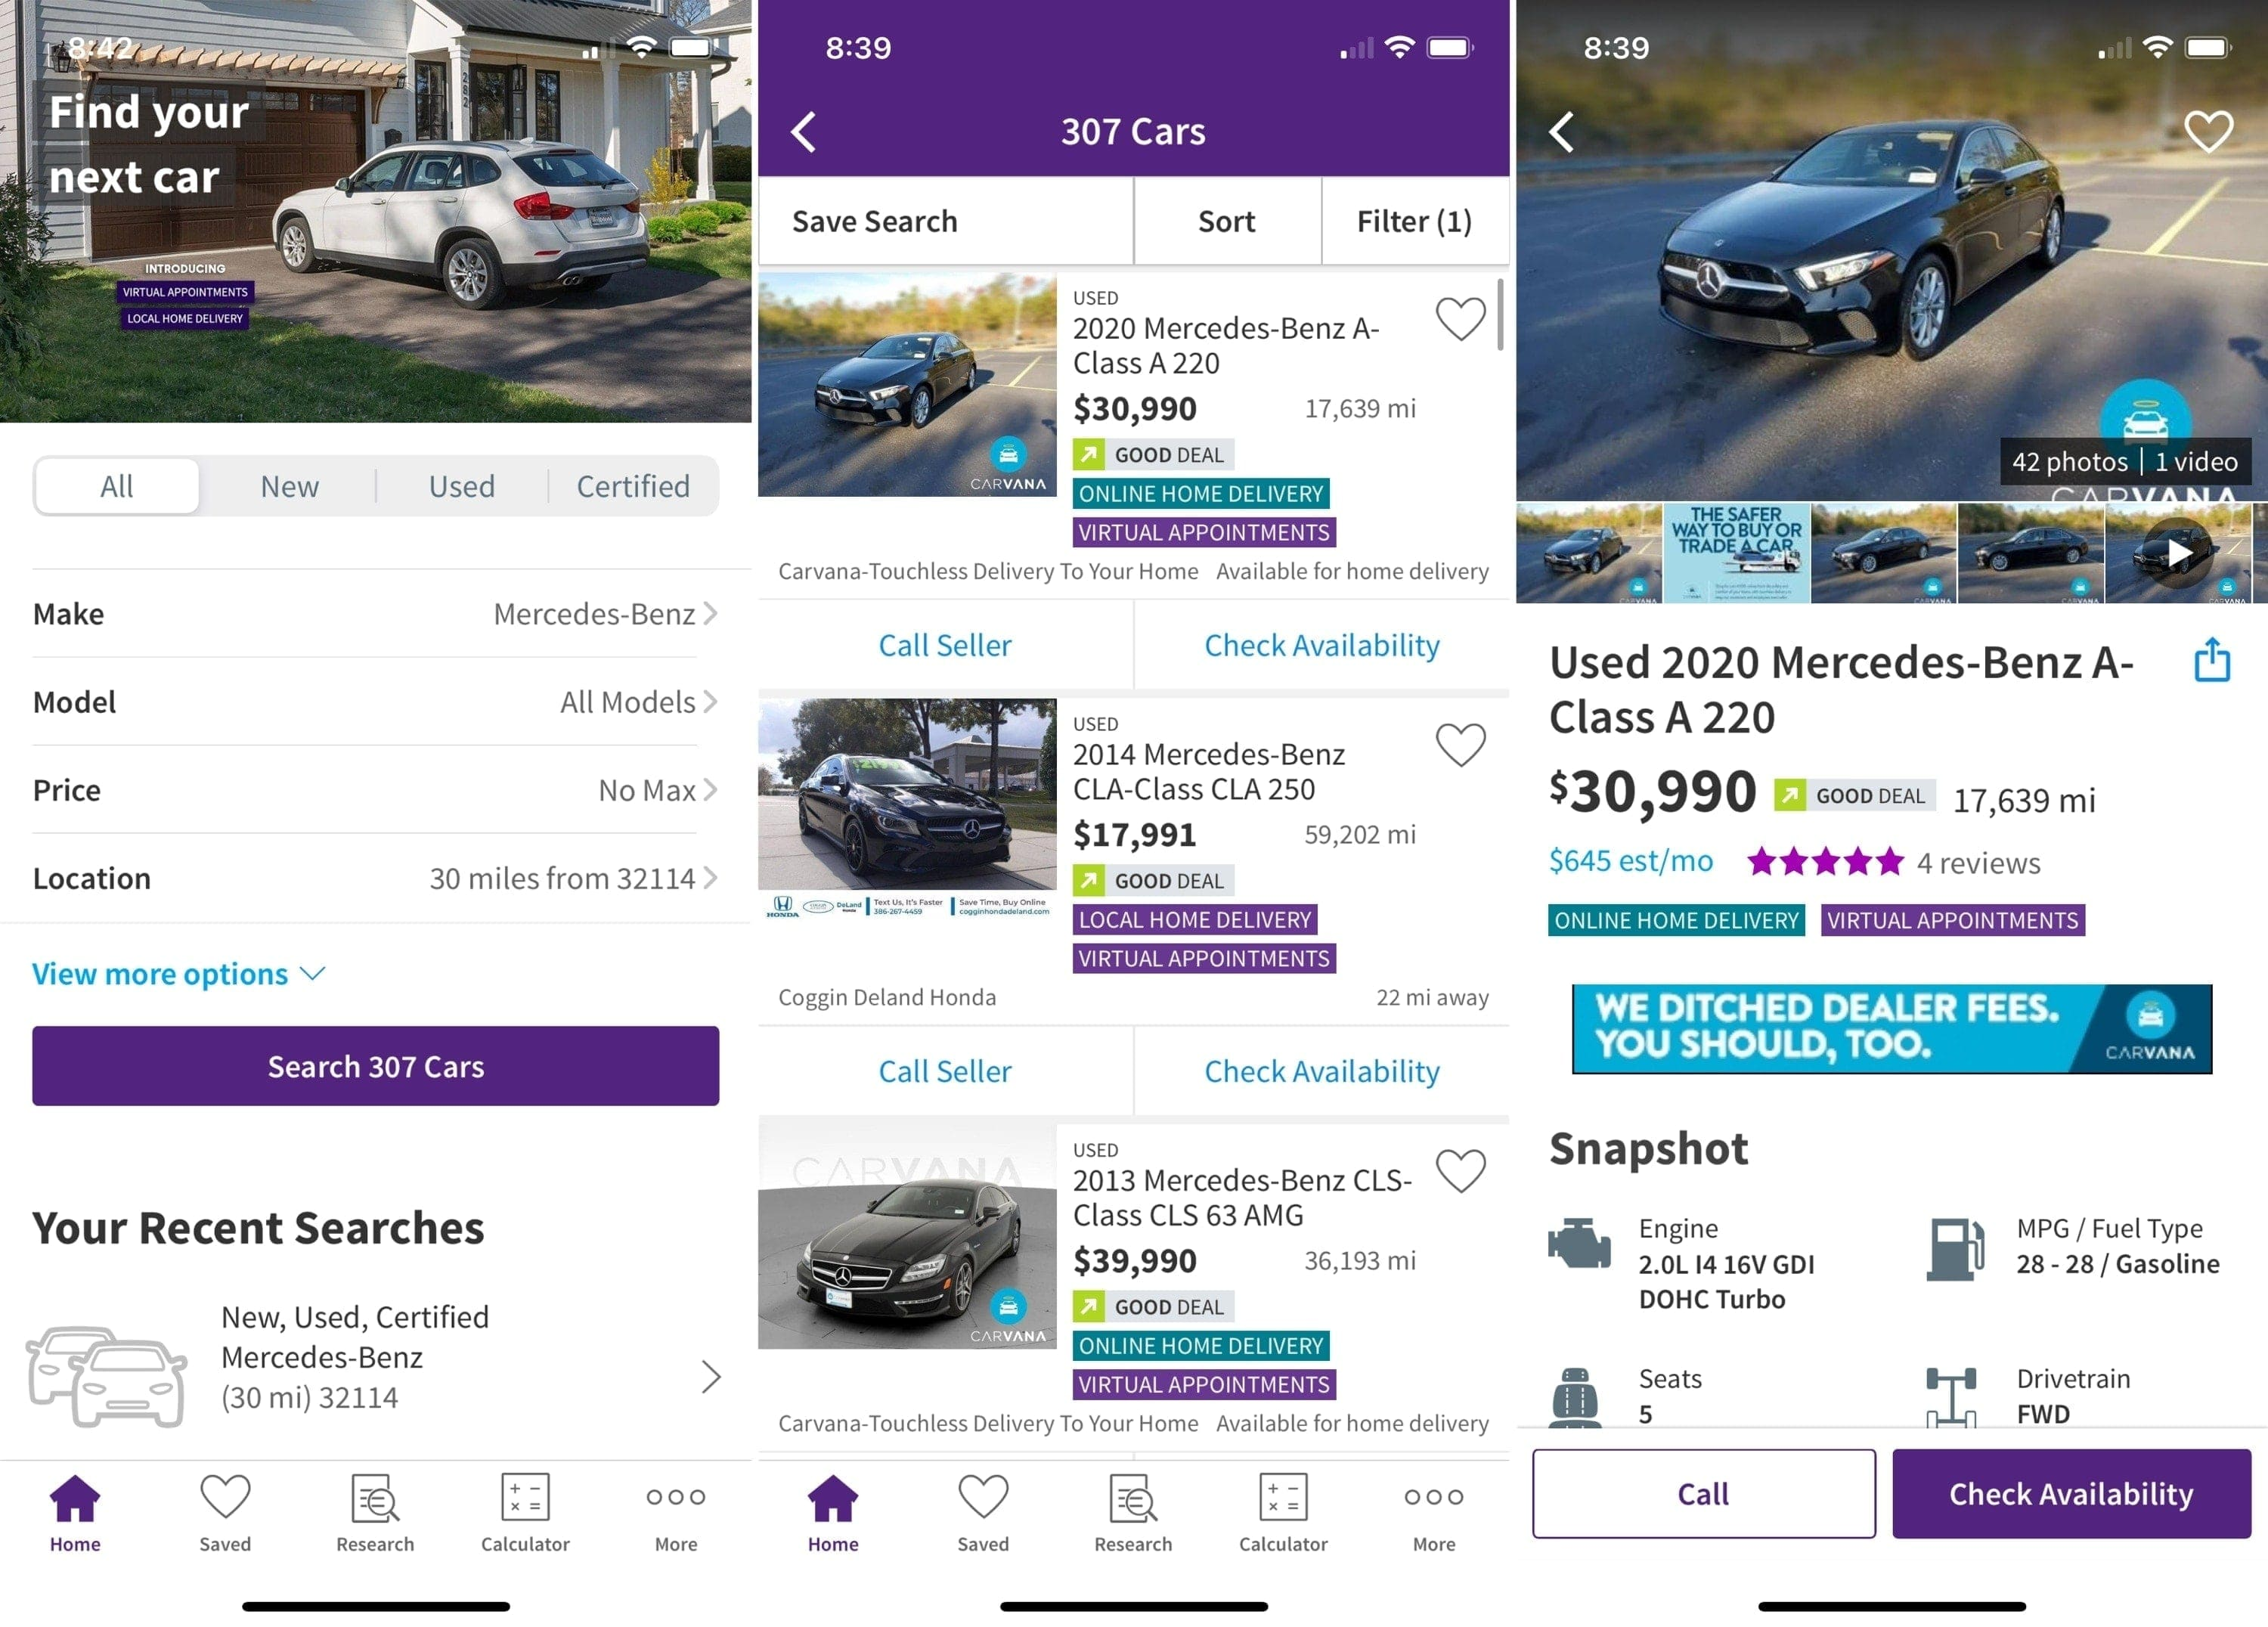 Apps for buying a car - CarsDotCom on iPhone